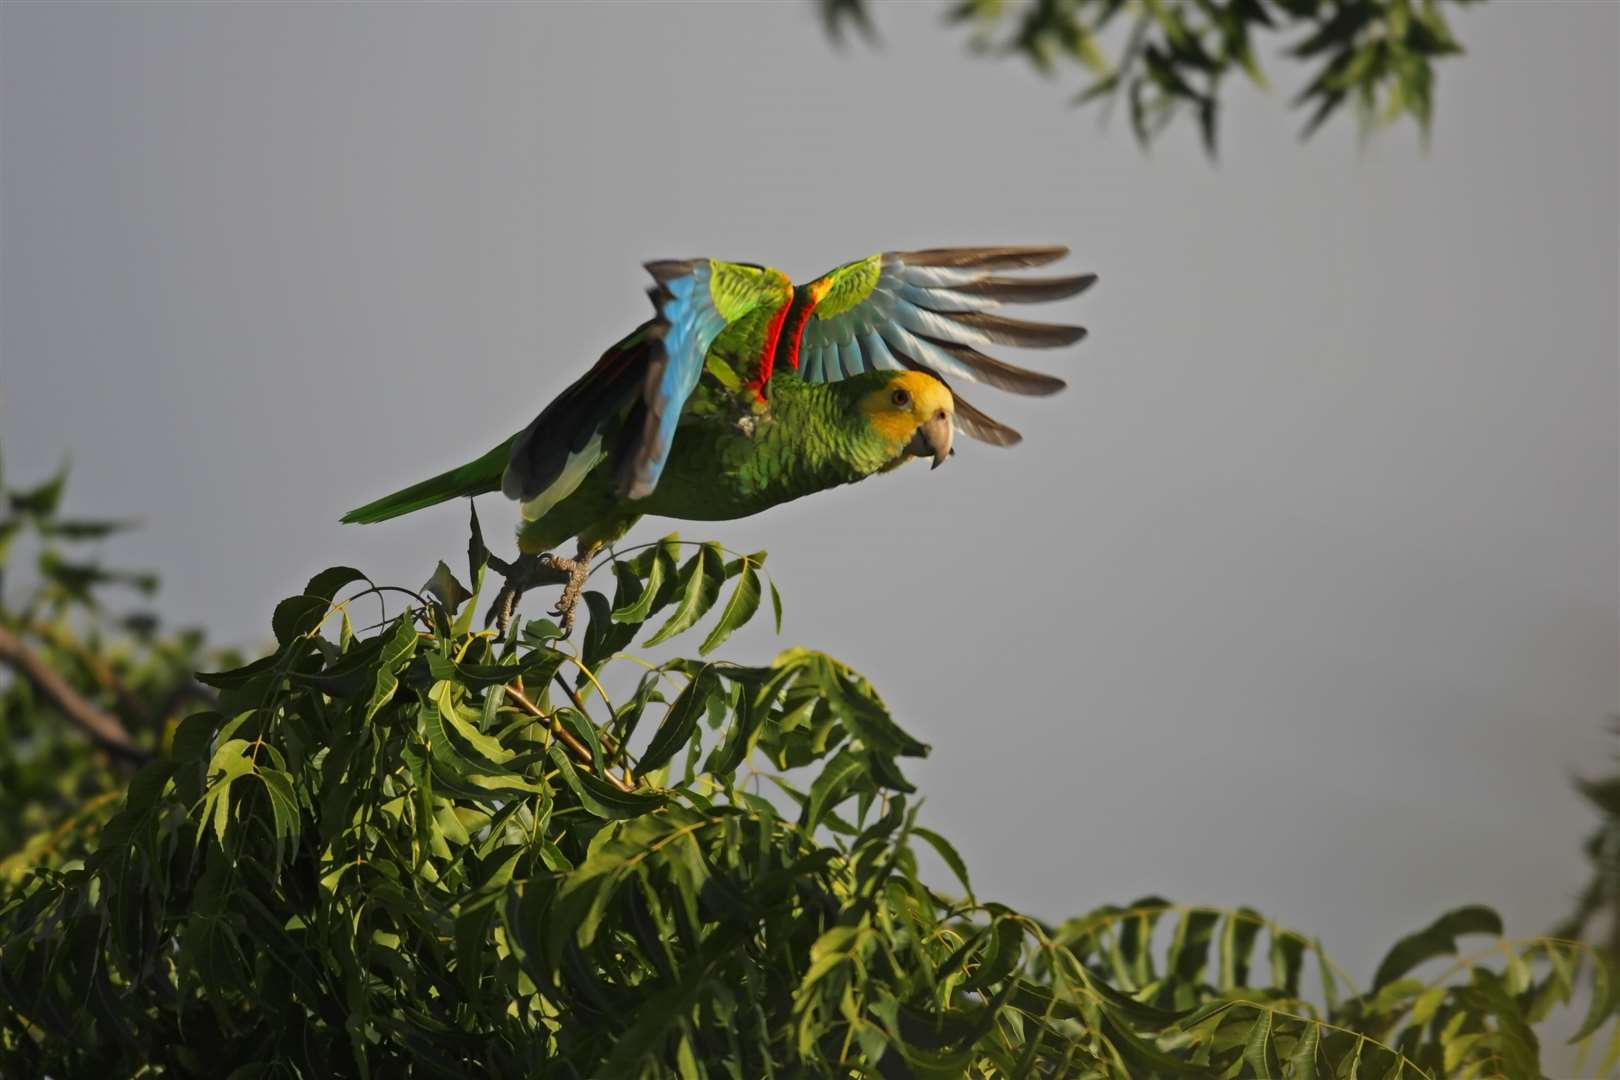 Yellow-shouldered parrot (Amazona barbadensis) taking flight